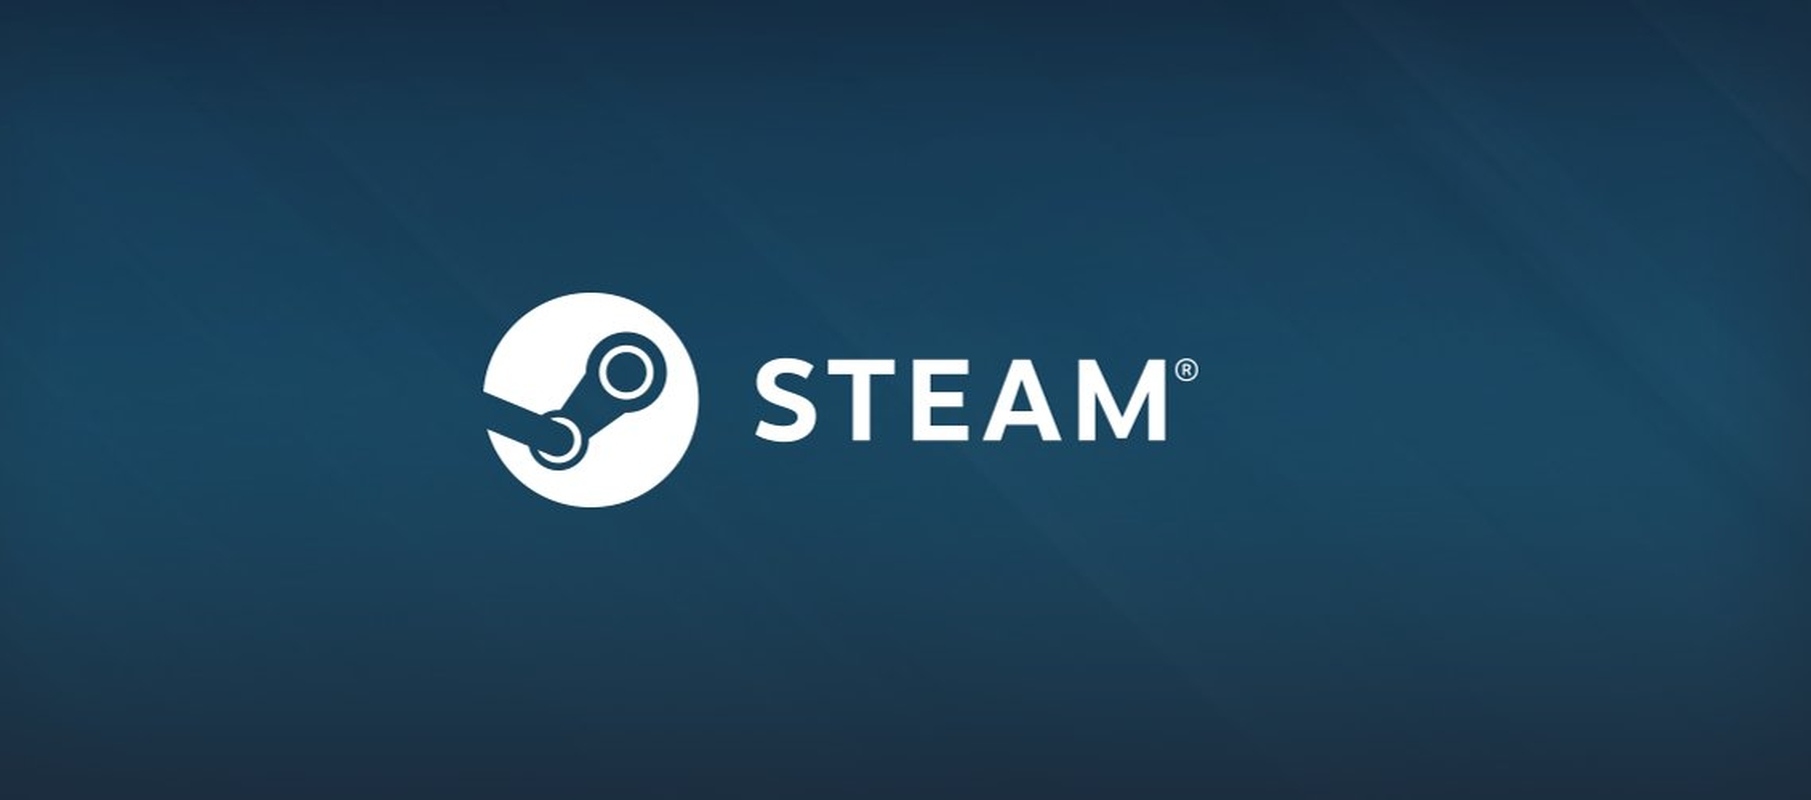 Steam Offers Patches And New Updates On Soundtrack Feature